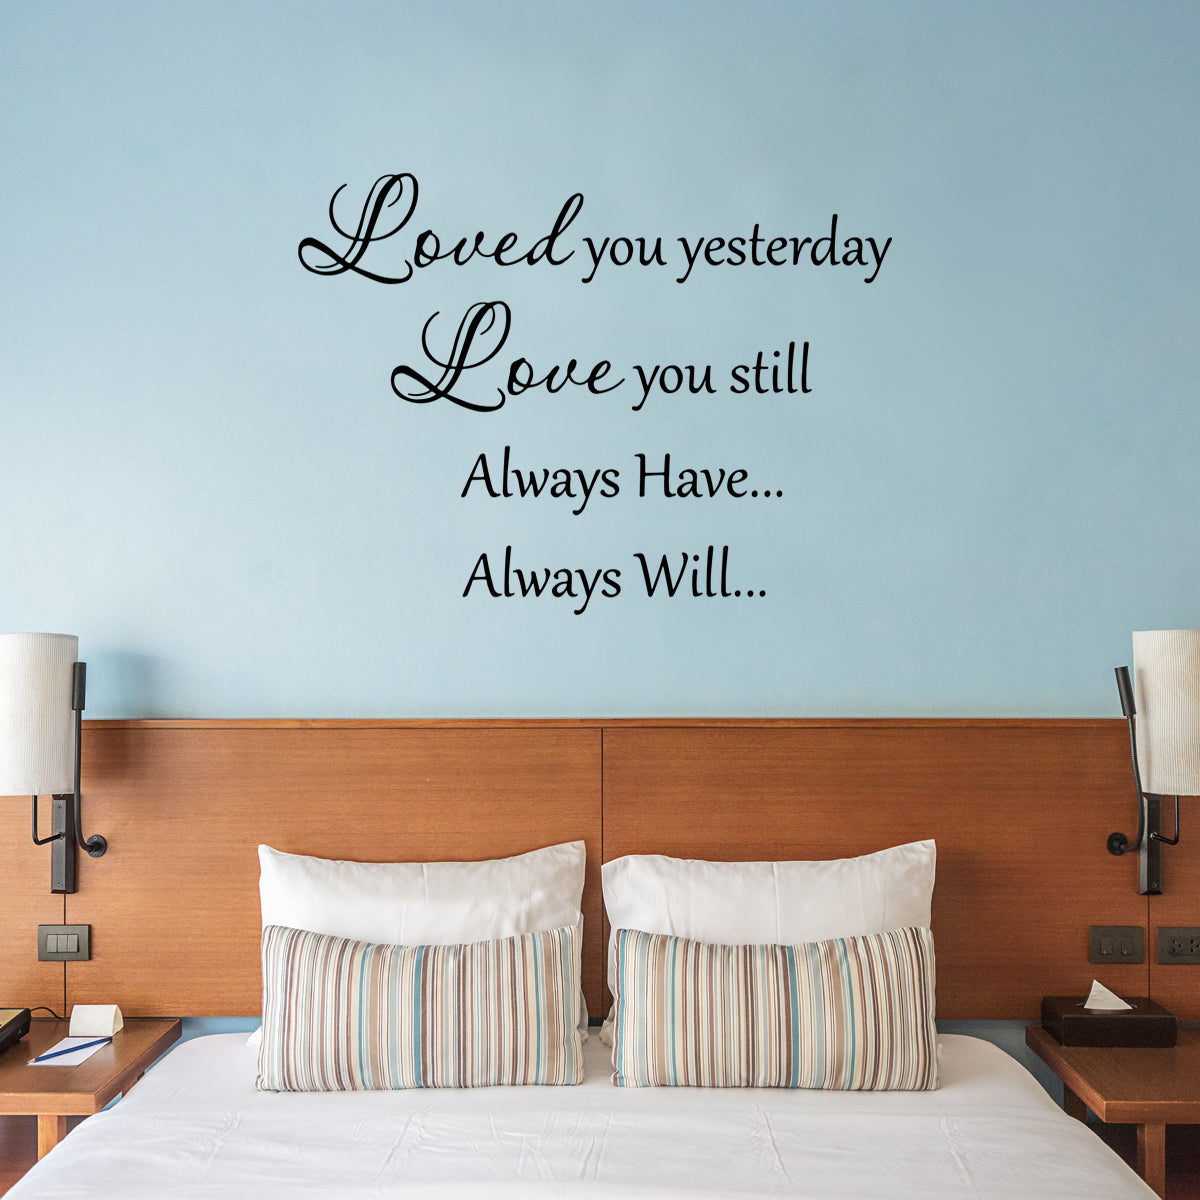 VWAQ Loved You Yesterday Love You Still Vinyl Wall Decal - VWAQ Vinyl Wall Art Quotes and Prints